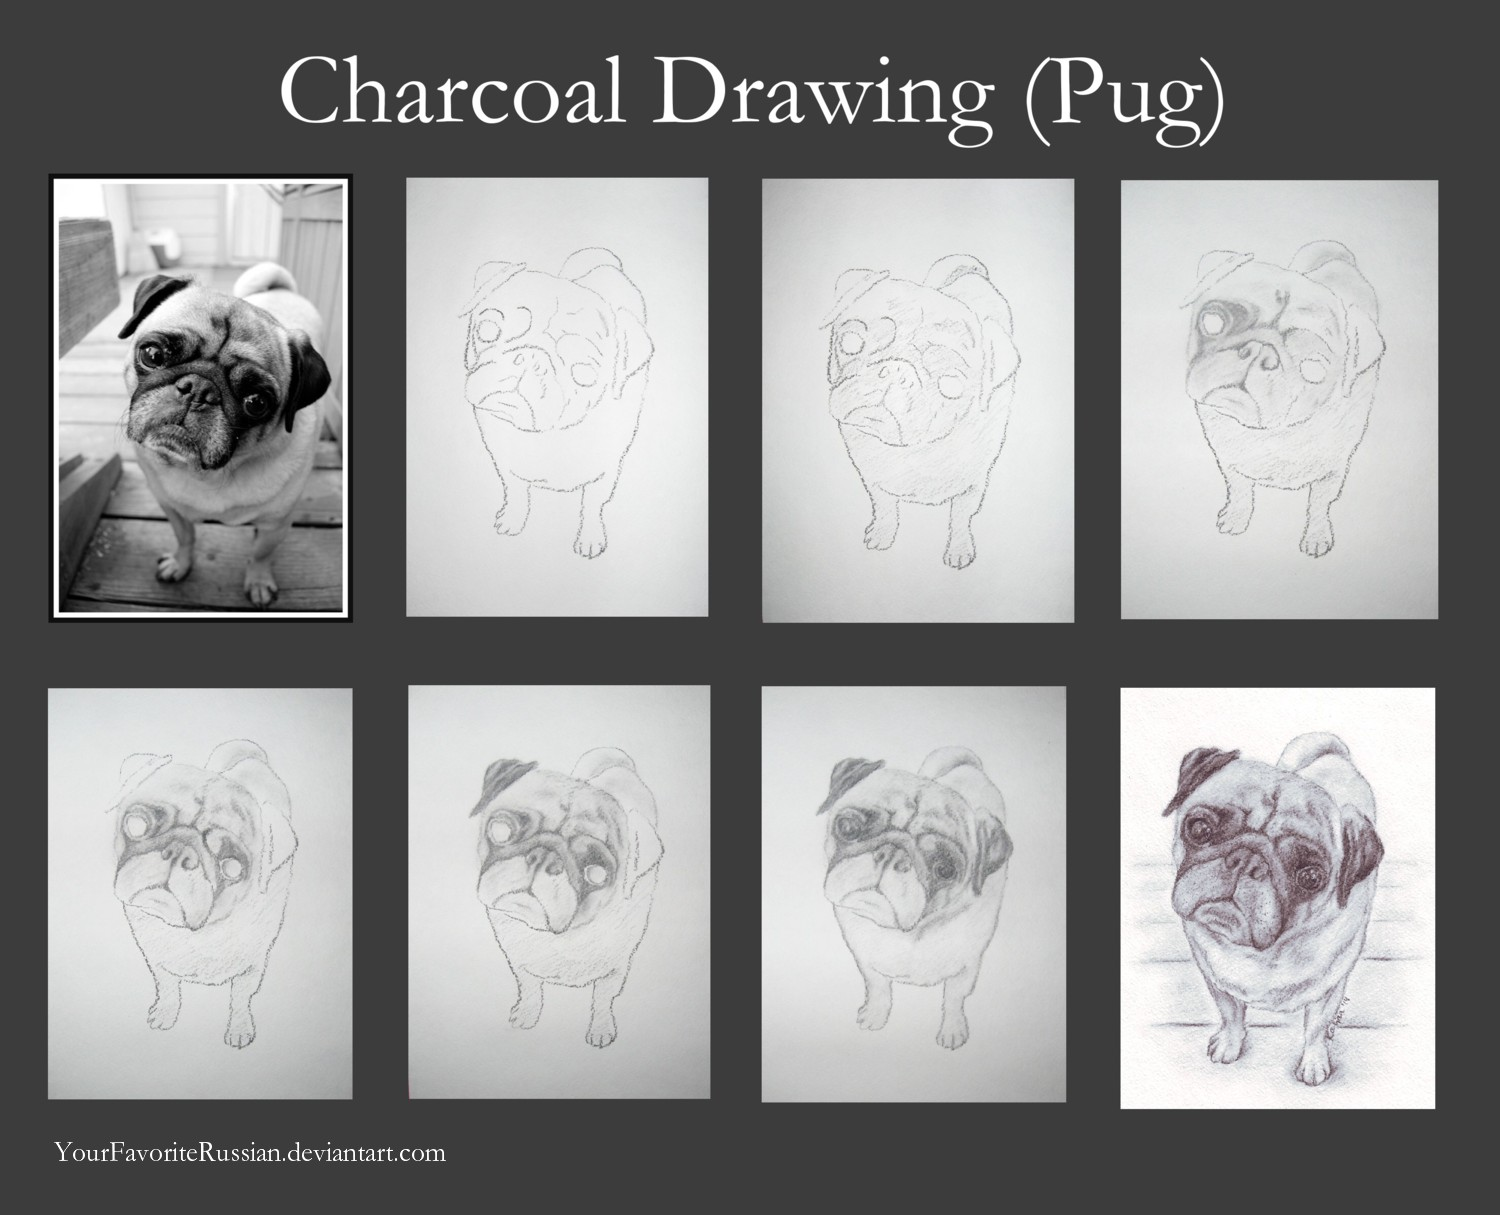 Charcoal drawing tutorial pug by yourfavoriterussian on deviantart